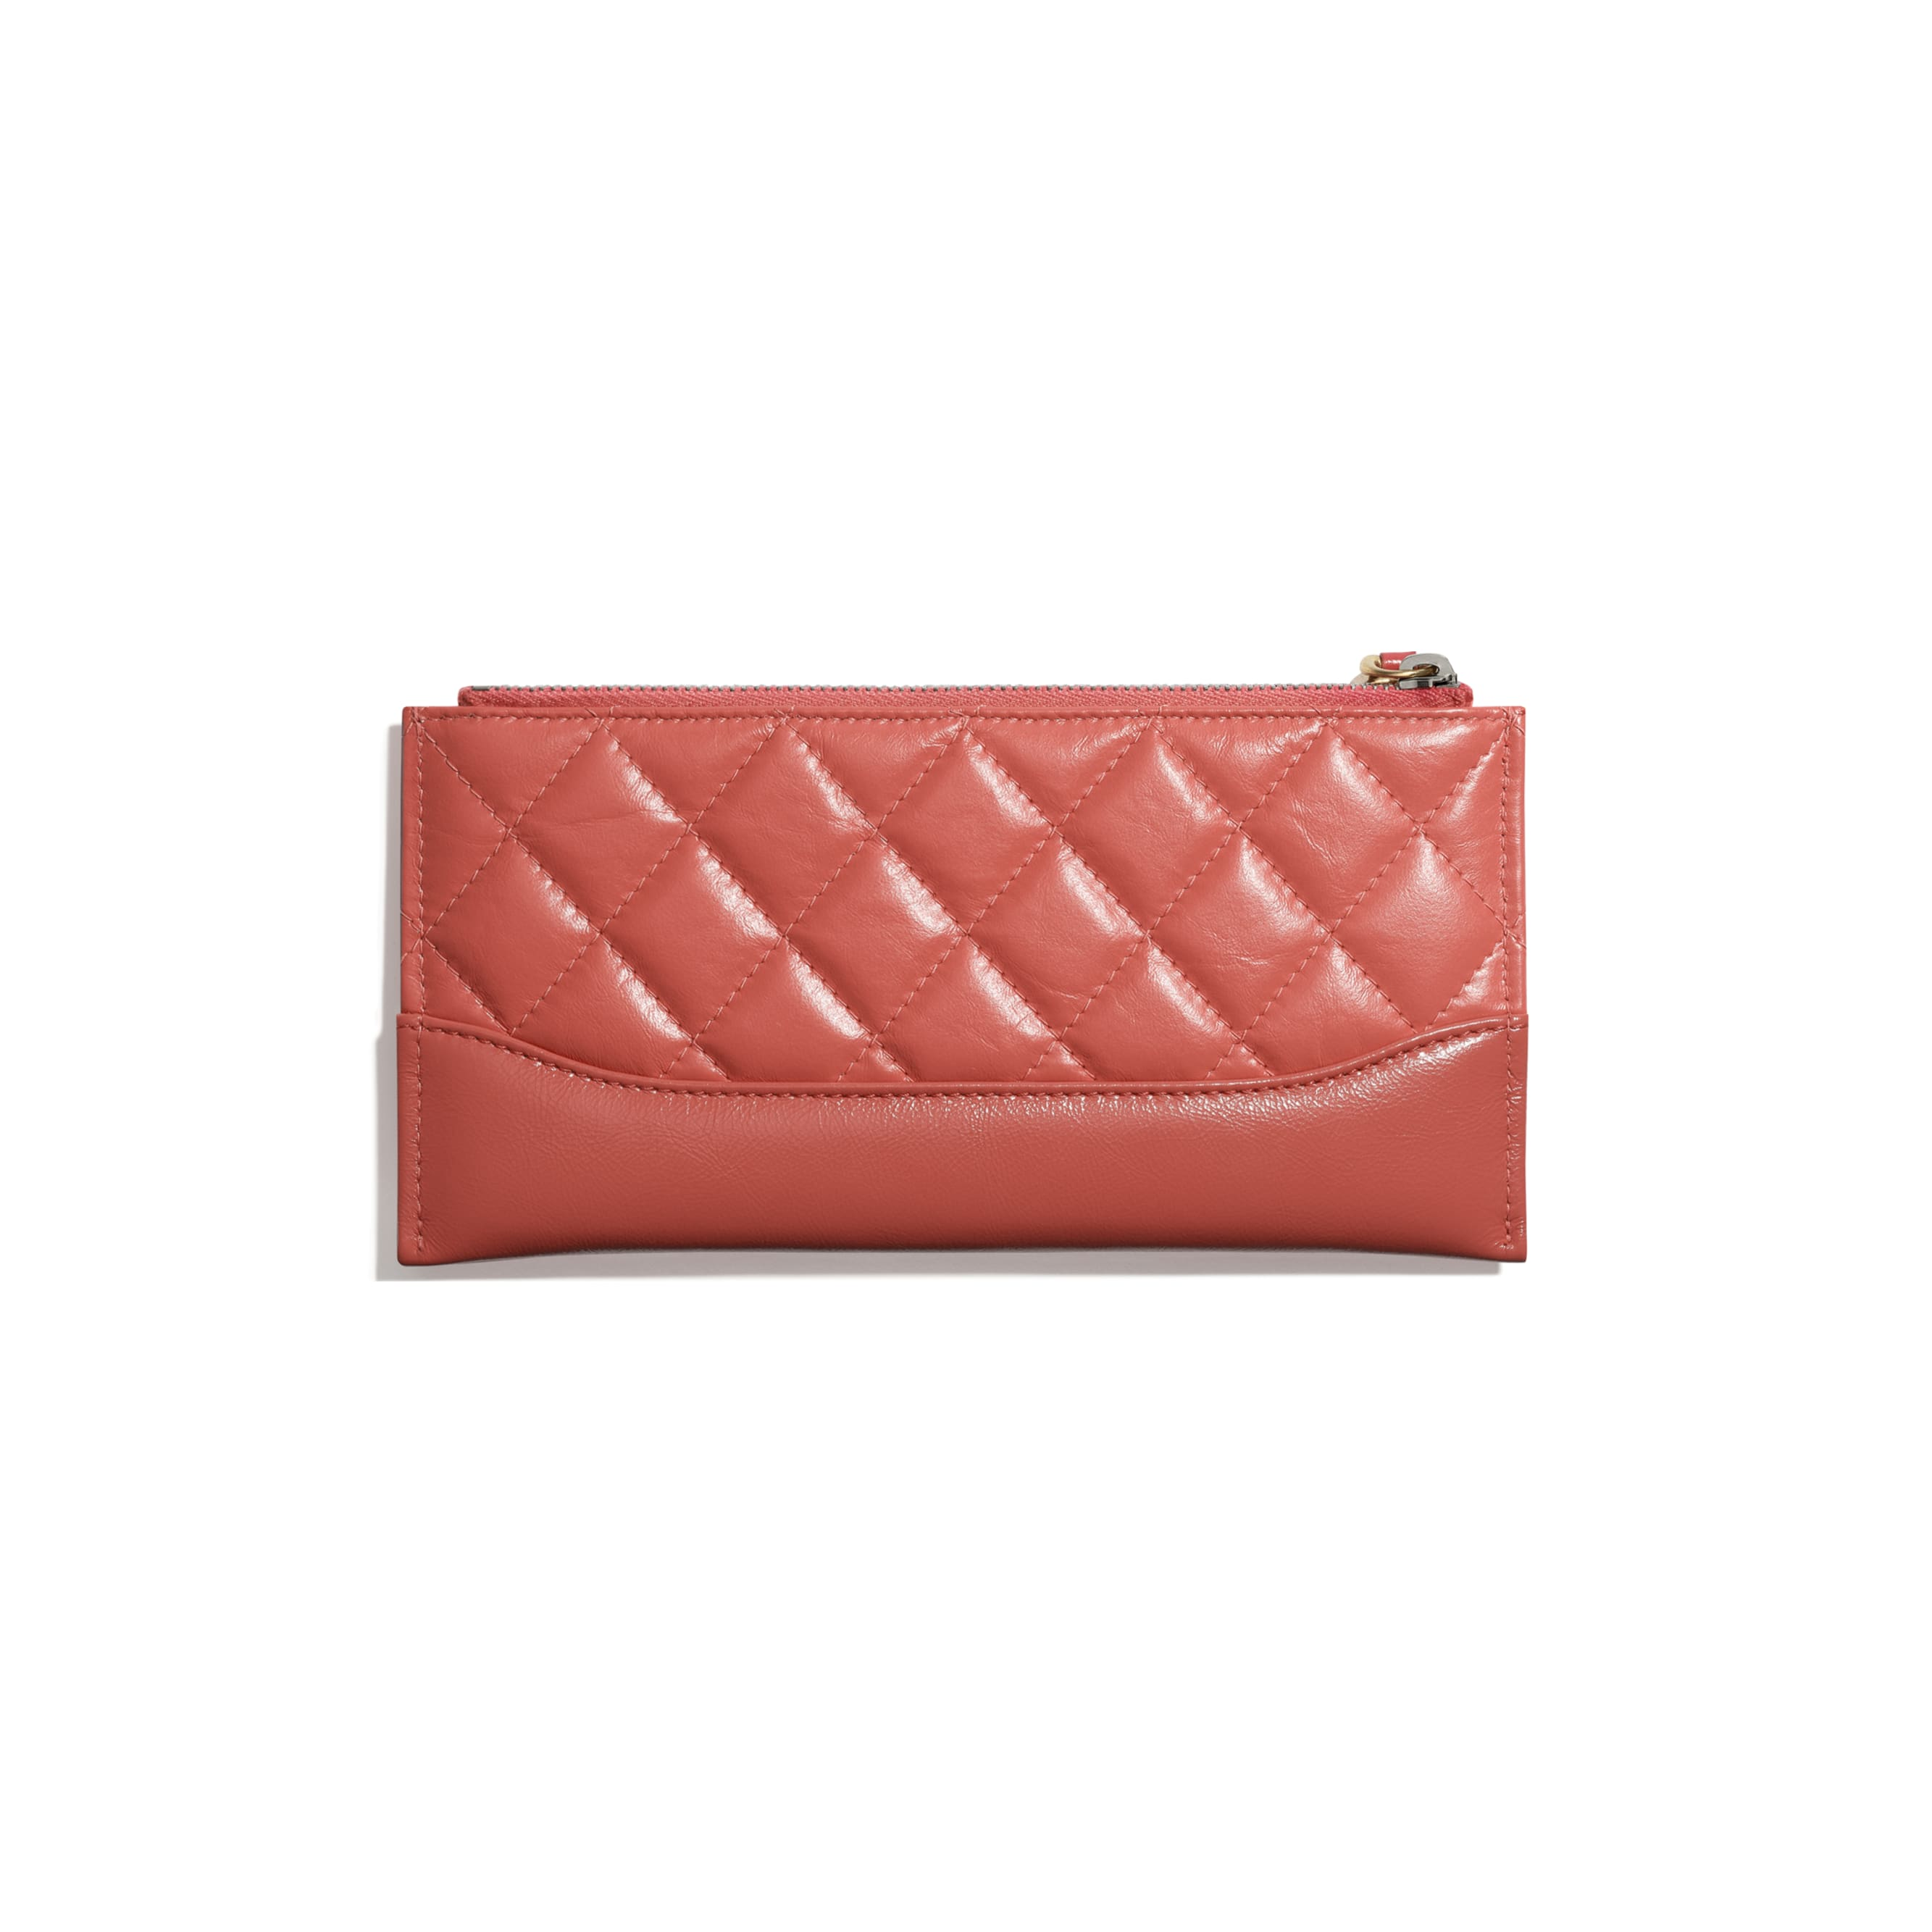 Pouch - Coral - Aged Calfskin, Smooth Calfskin, Gold-Tone, Silver-Tone & Ruthenium-Finish Metal - CHANEL - Alternative view - see standard sized version